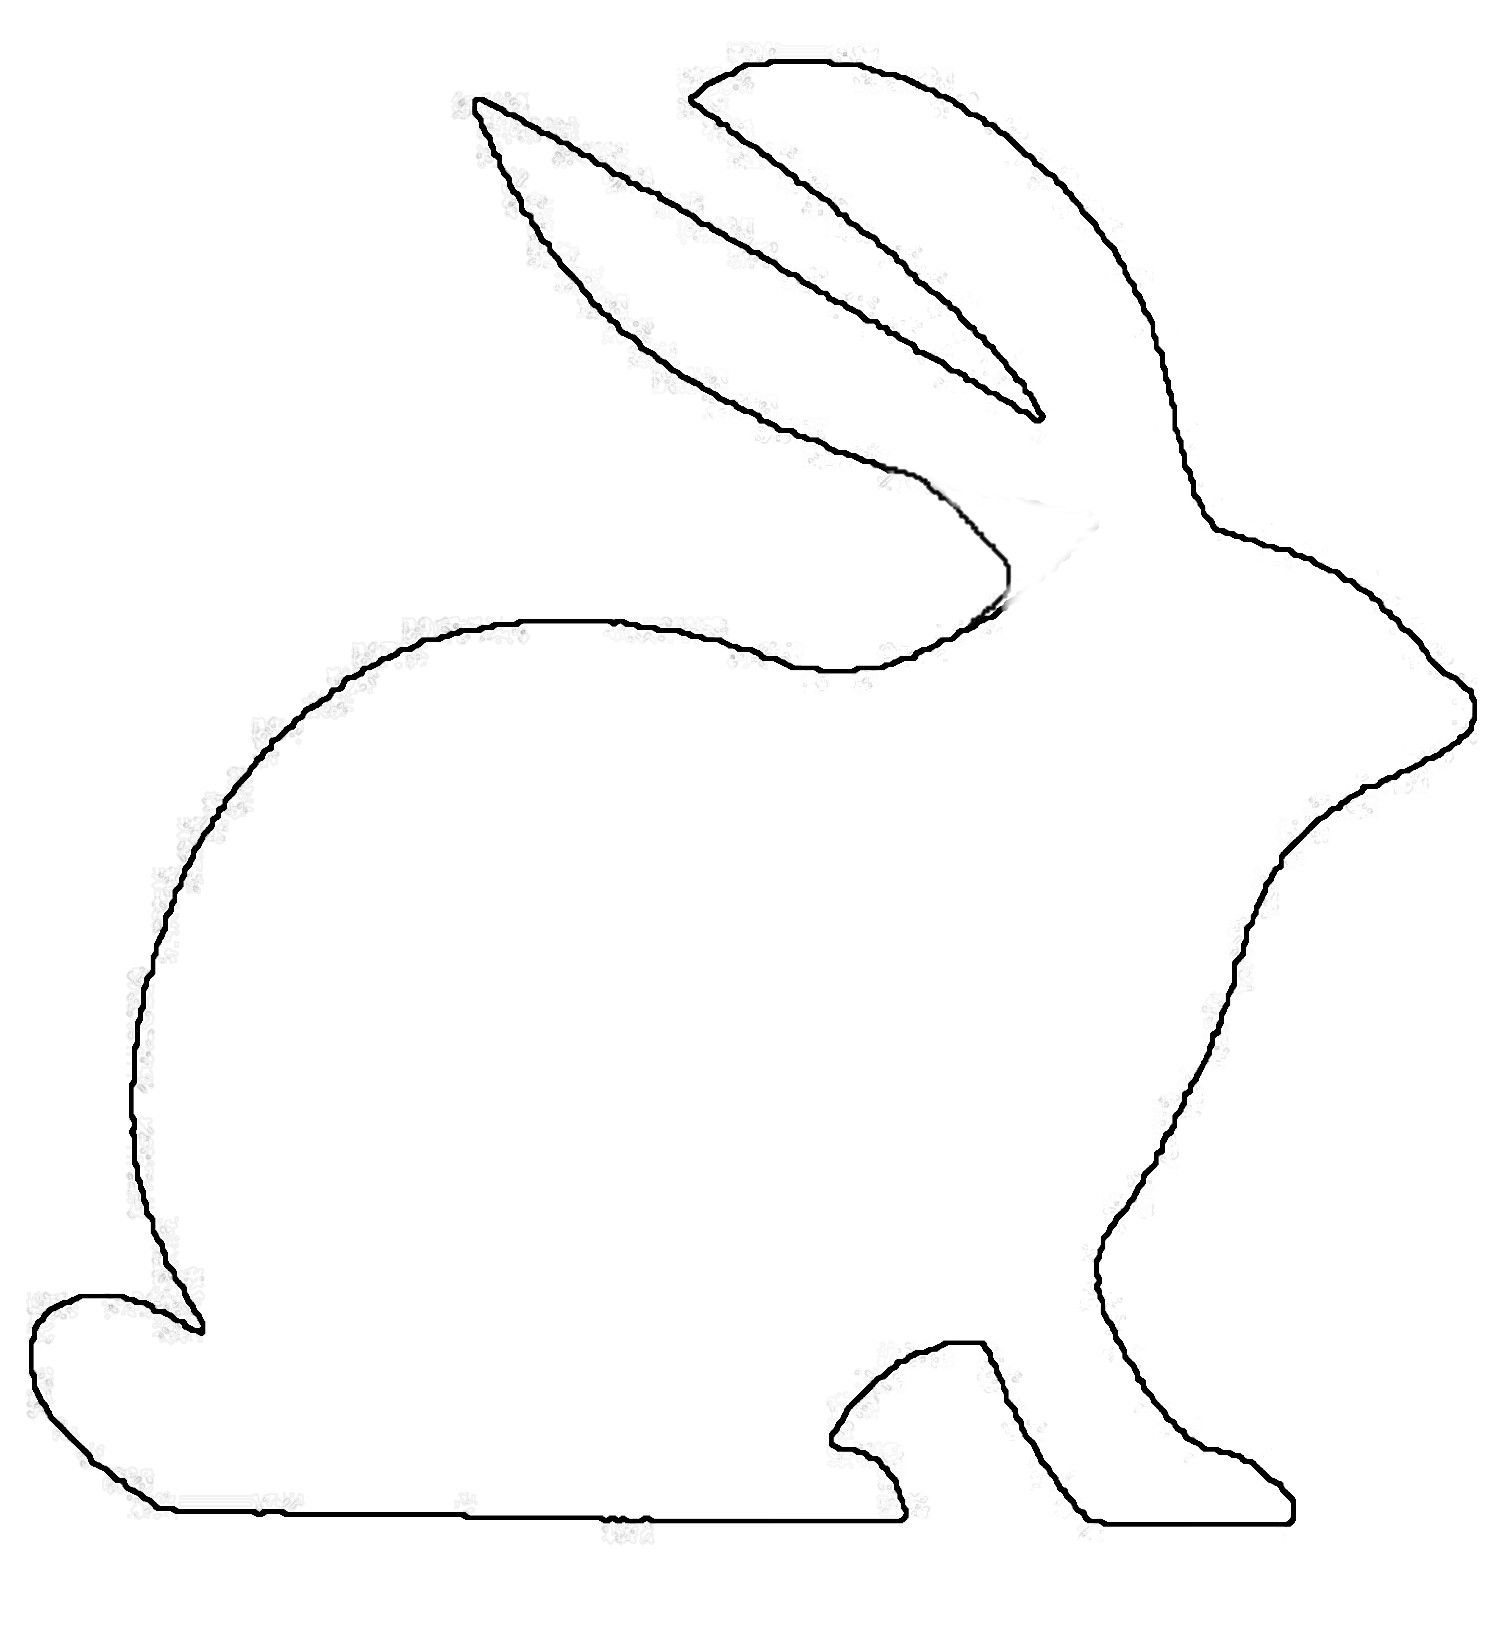 free rabbit patterns to paint | Toilet plunger duck head ...